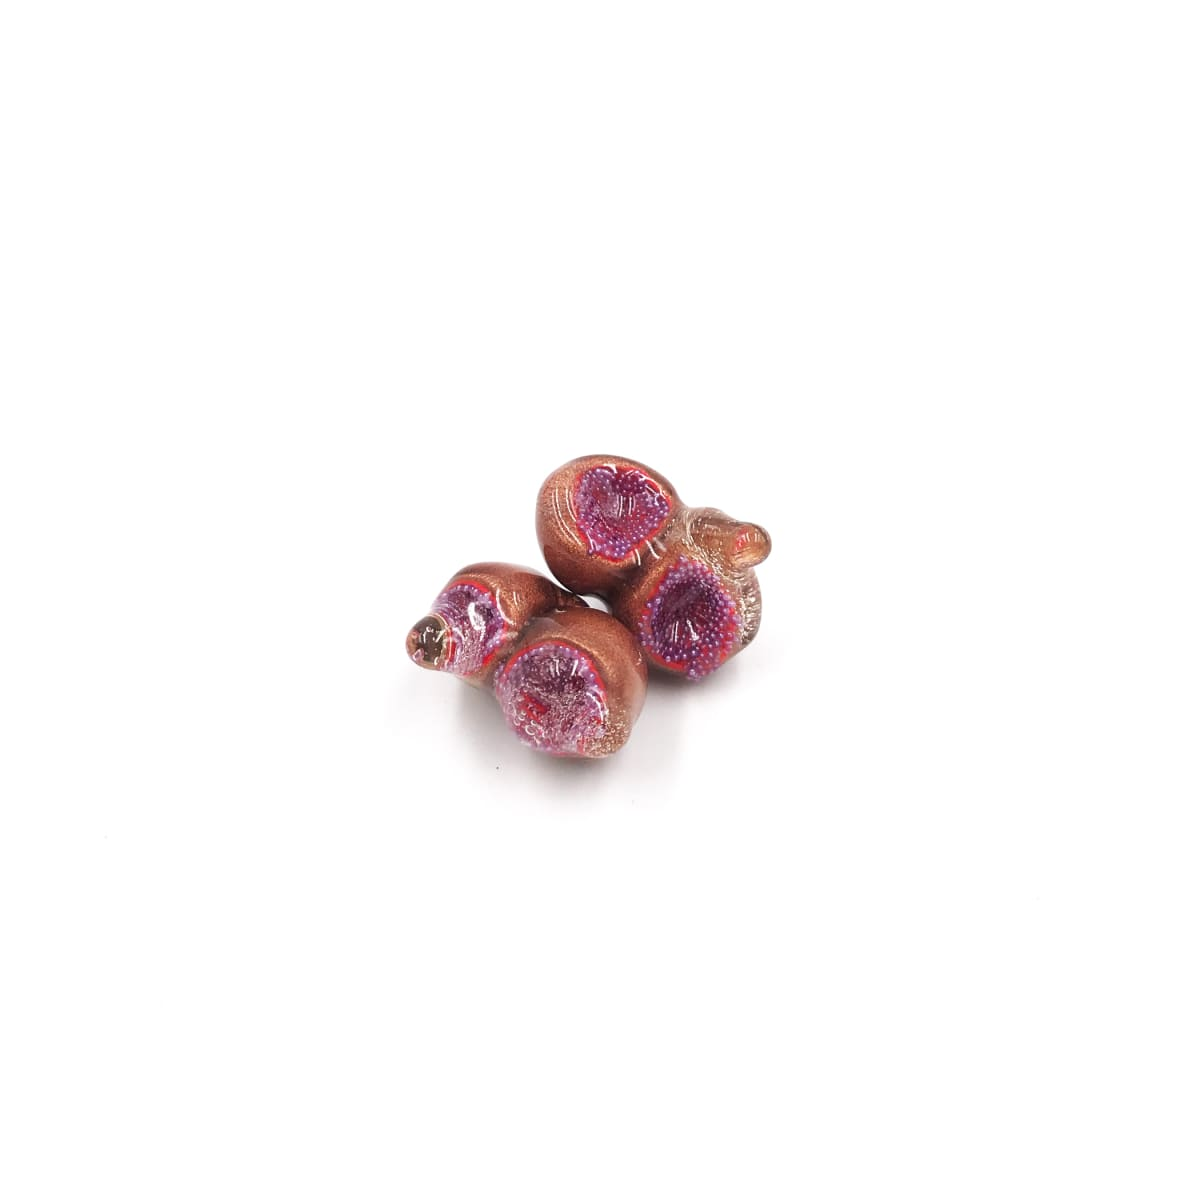 Jillian Moore, Wee Copper Cuppers with Purple Balls